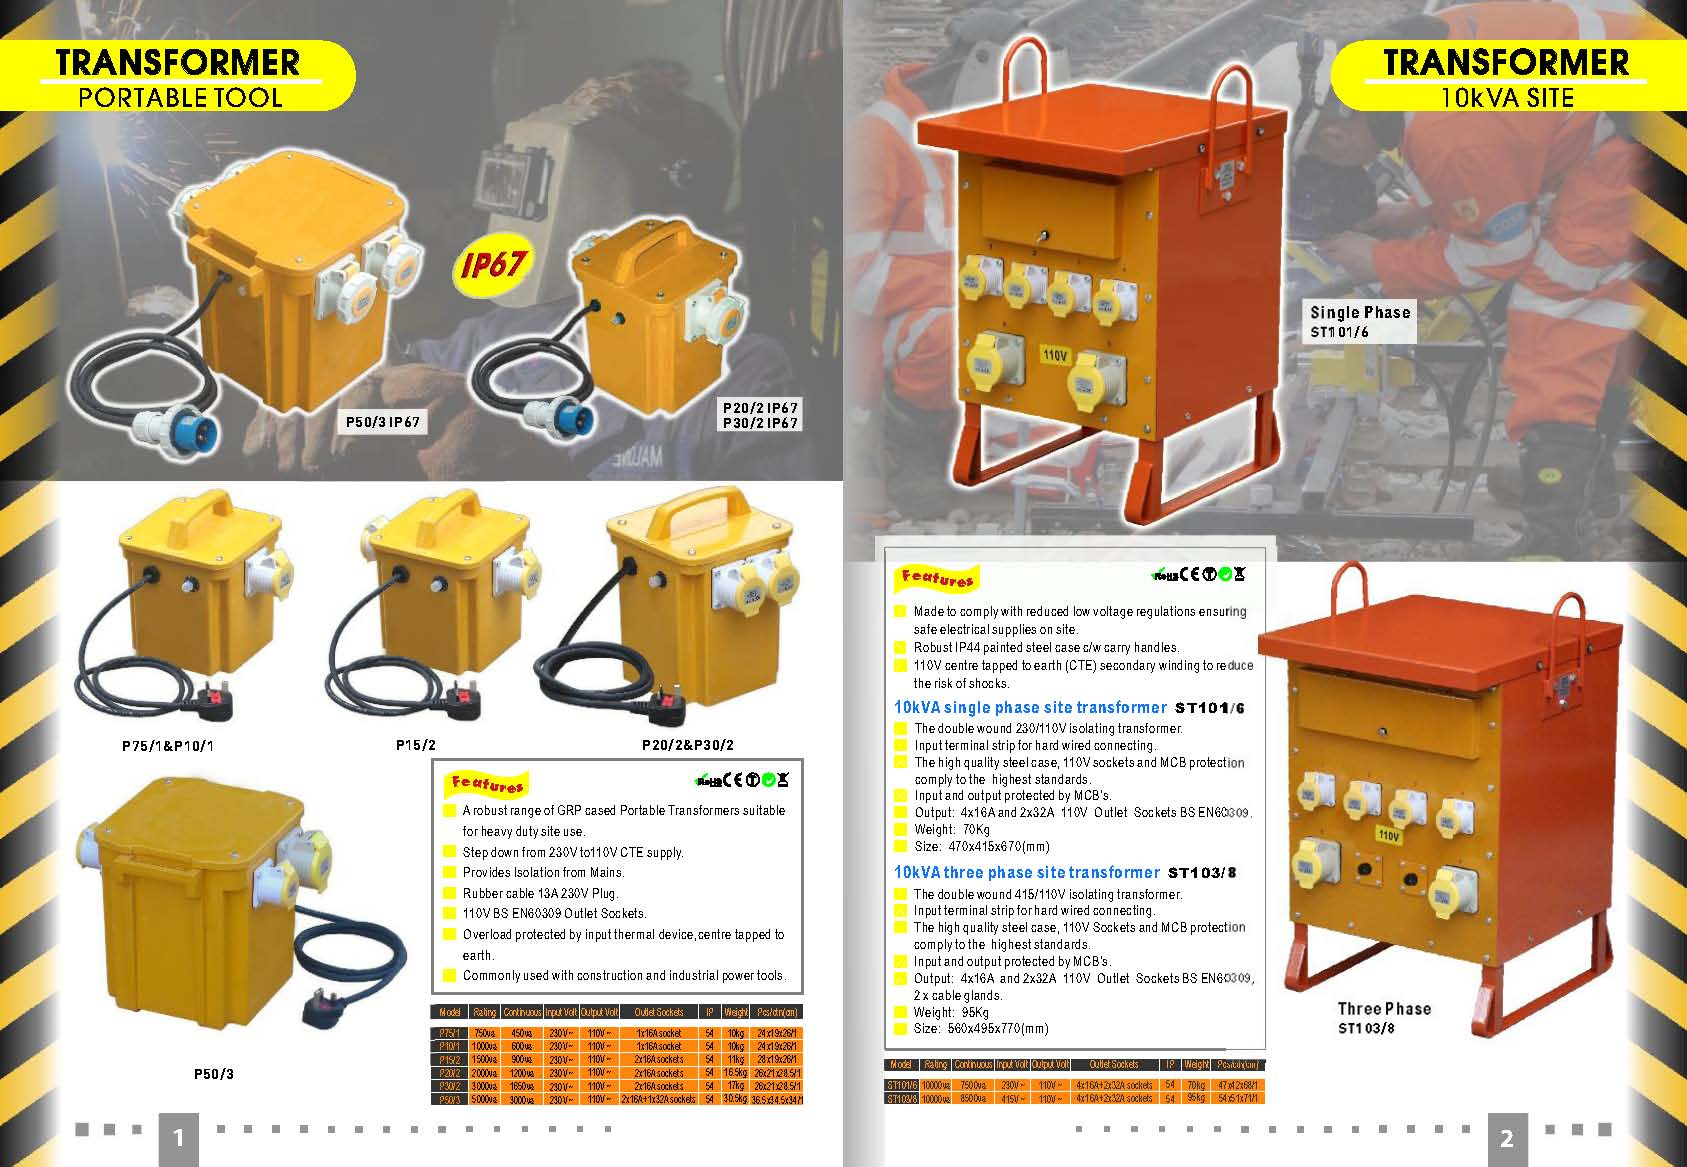 3.3KVA Portable Transformer for Site Power Tools 110Volts Heavy Duty Transformer